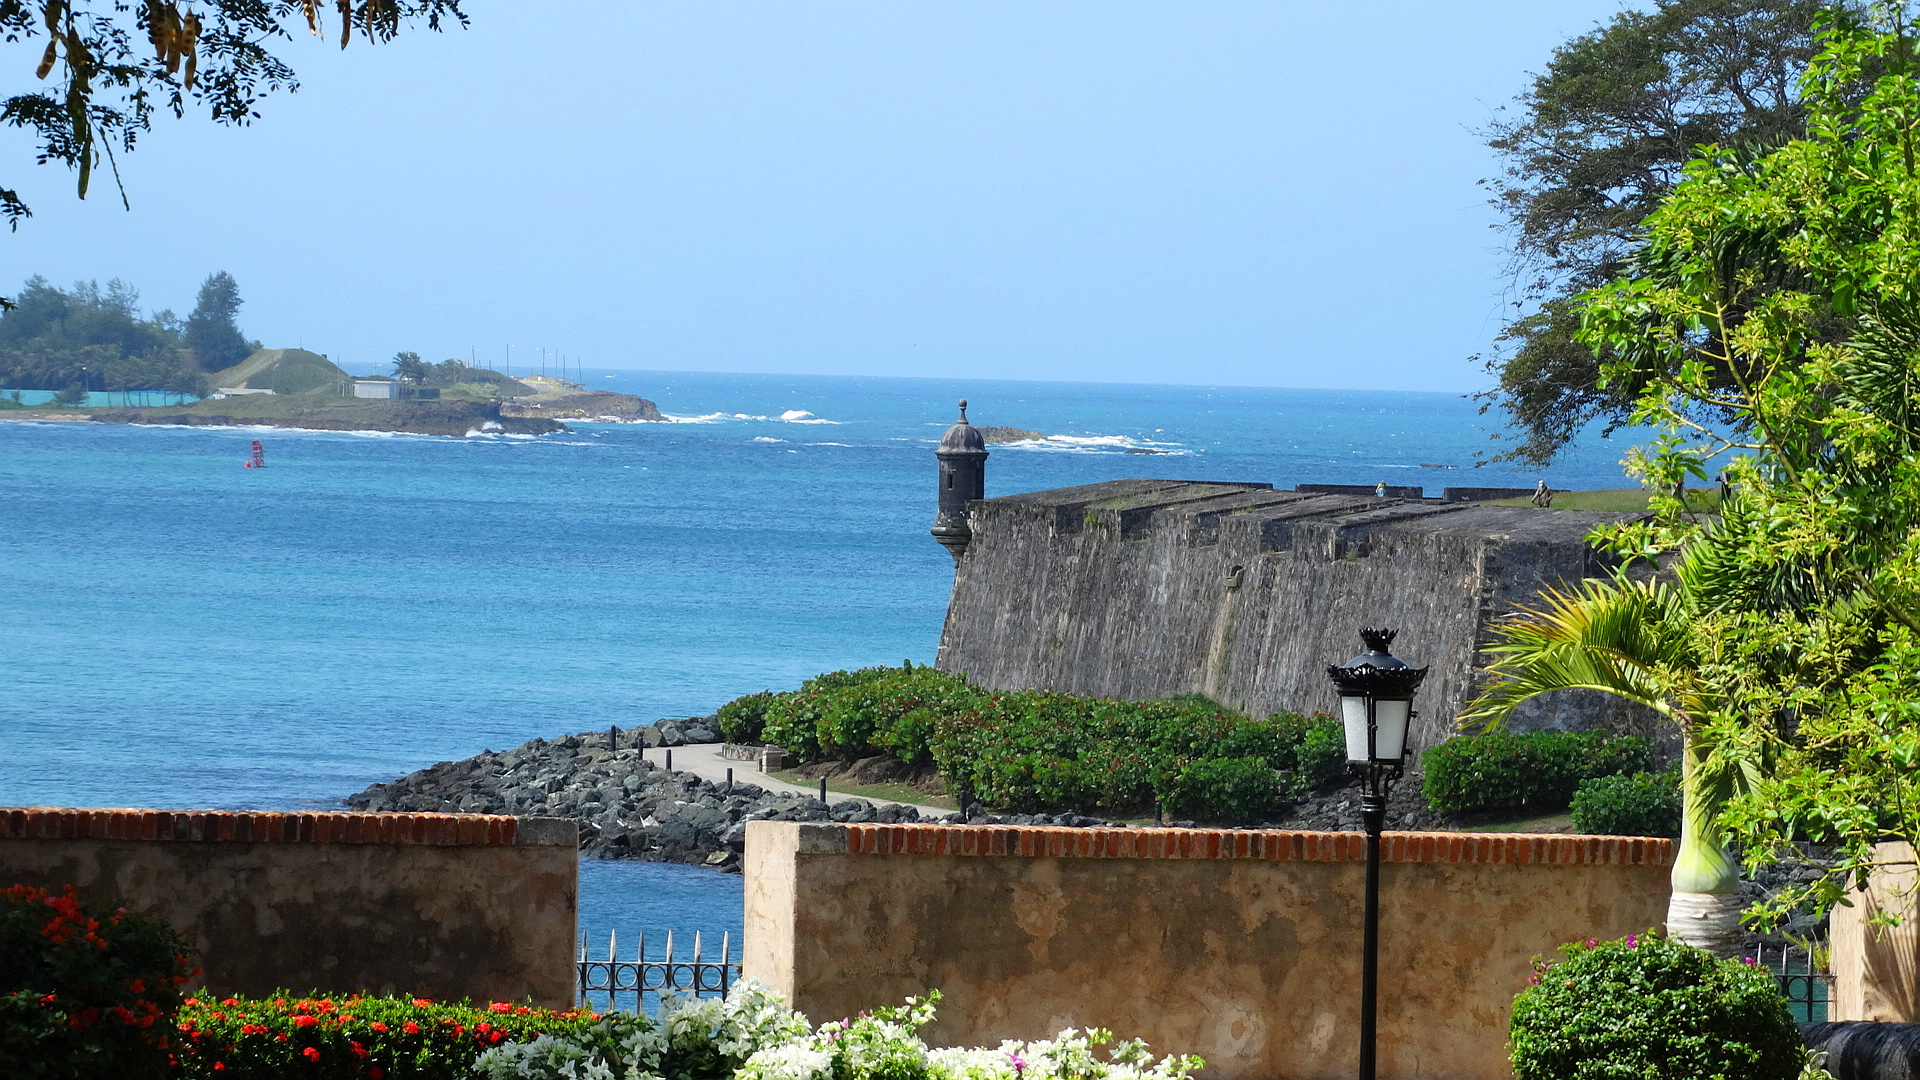 The Palacio is built on a prime ocean view spot in Old San Juan and is surrounded by La Forteleza or the old fort walls.